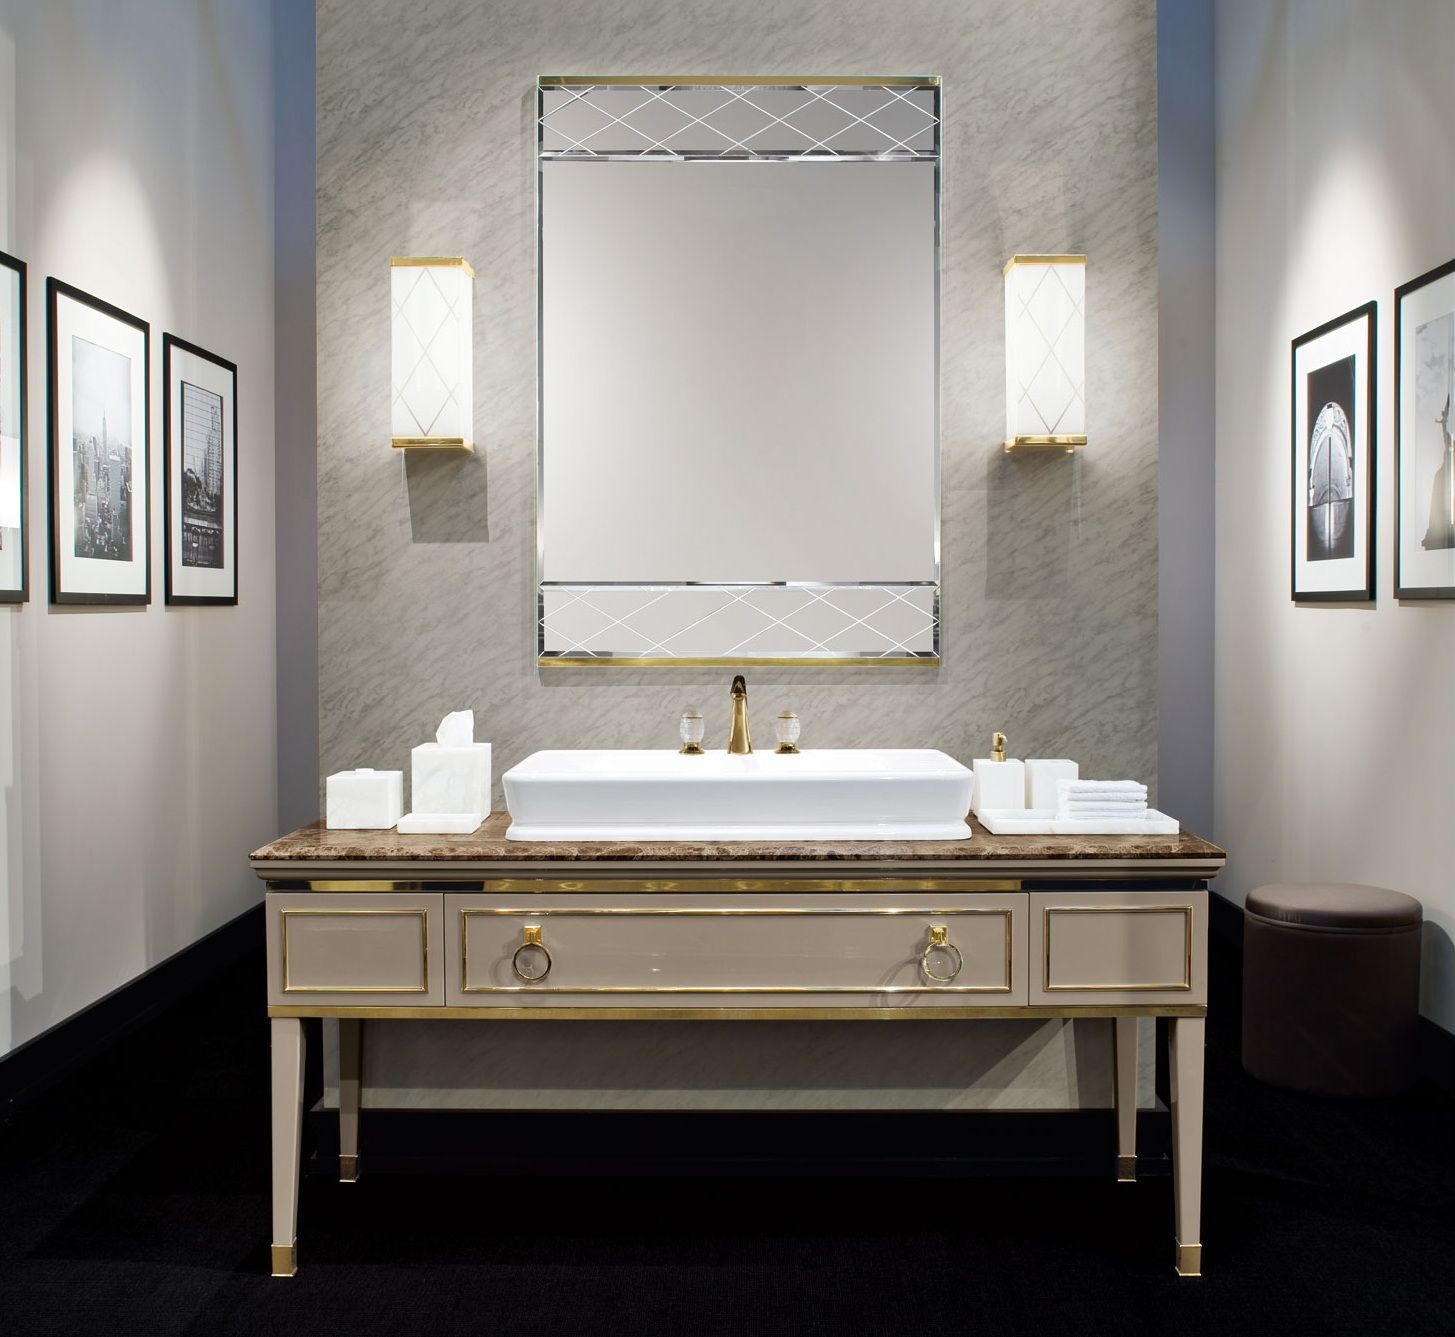 Italian Bathroom Decor Luxe Italian Designer Bathroom Sharing Beautiful Designer Home